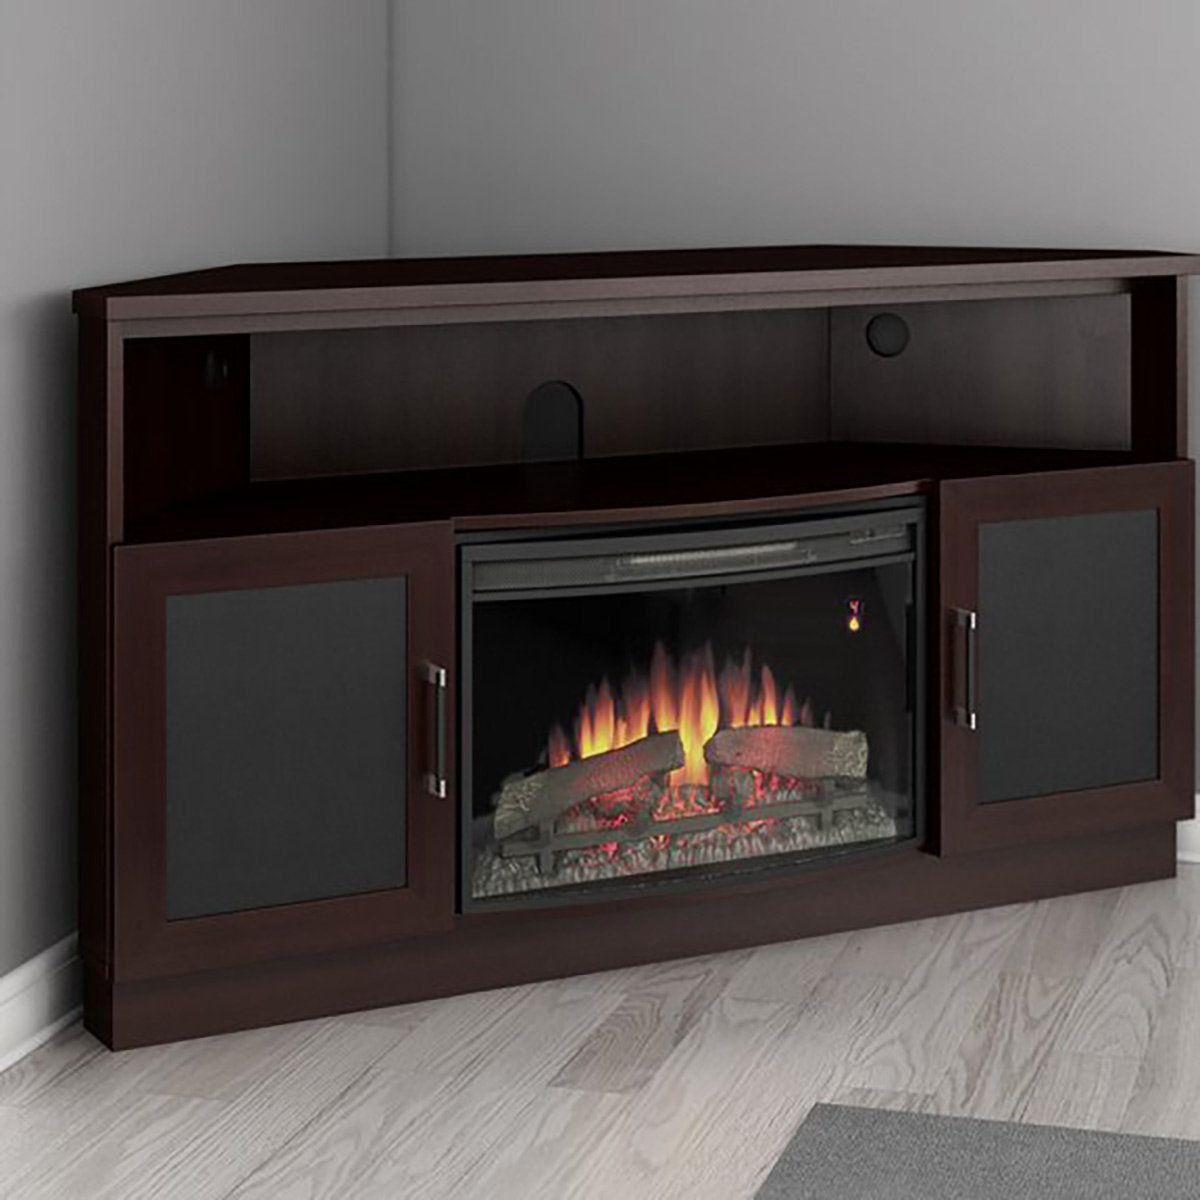 Furnitech 60 Ft60cccfb Corner Electric Fireplace Tv Stand Wenge